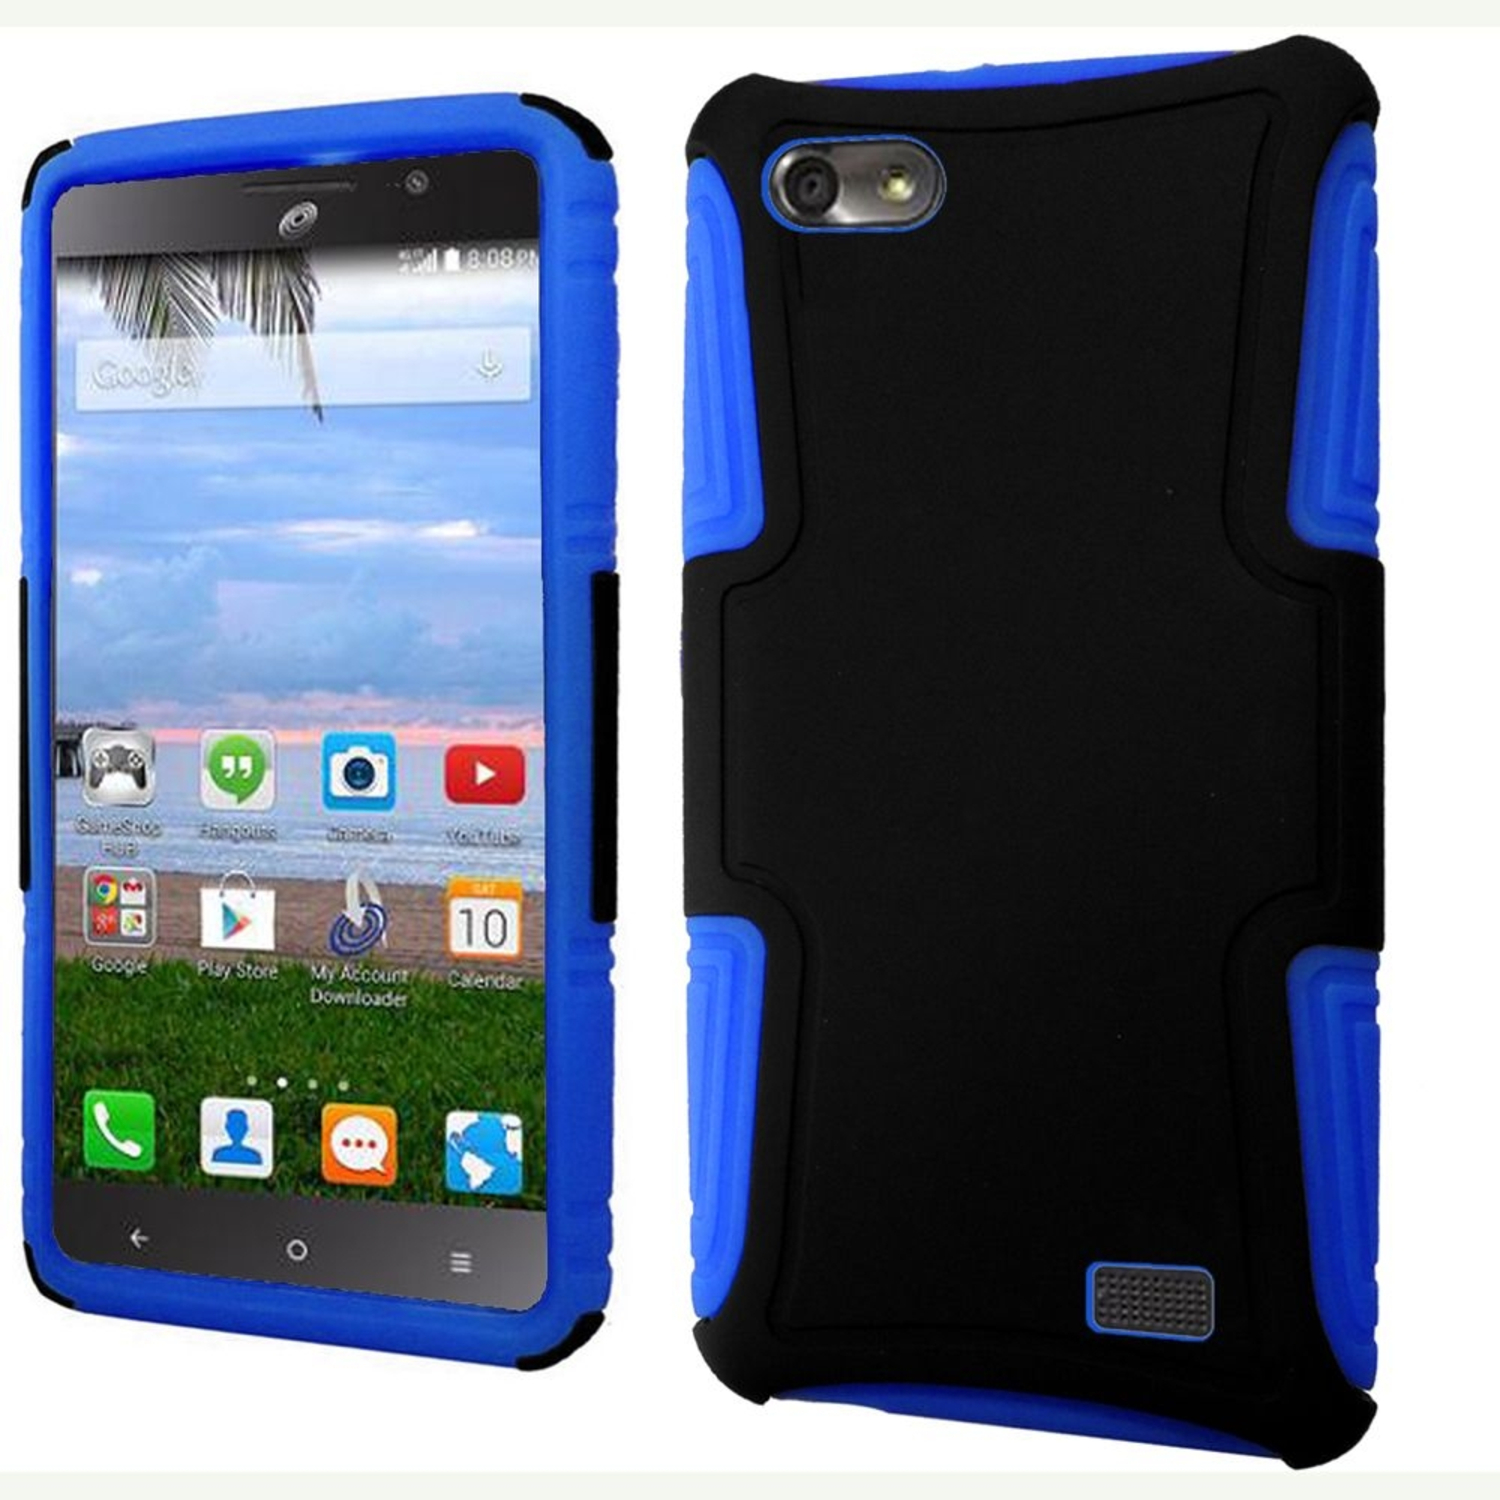 huawei raven. insten hard hybrid plastic silicone case for huawei raven lte - black/blue